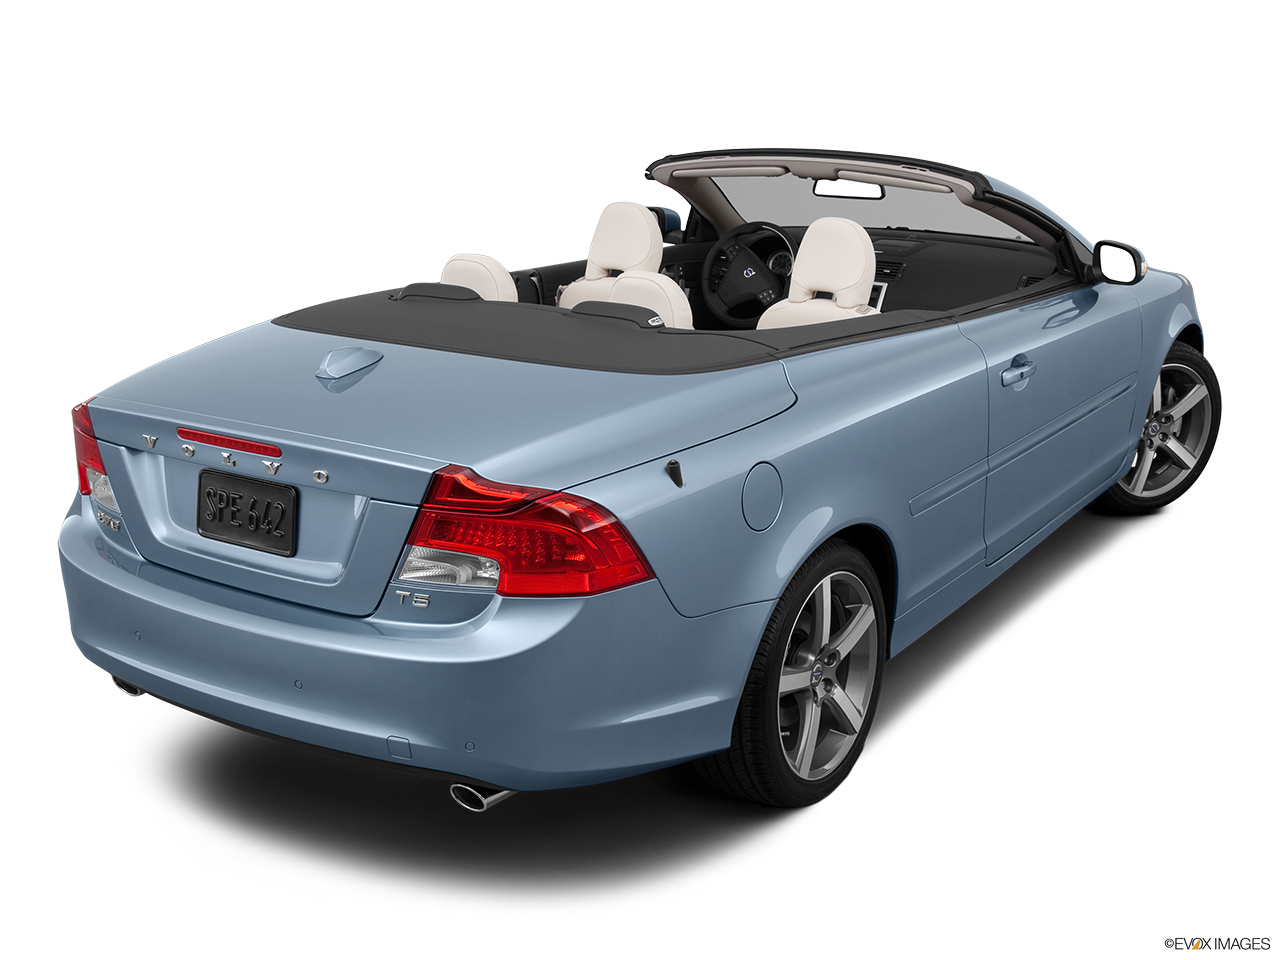 2013 Volvo C70 T5 Platinum Rear 3/4 angle view.